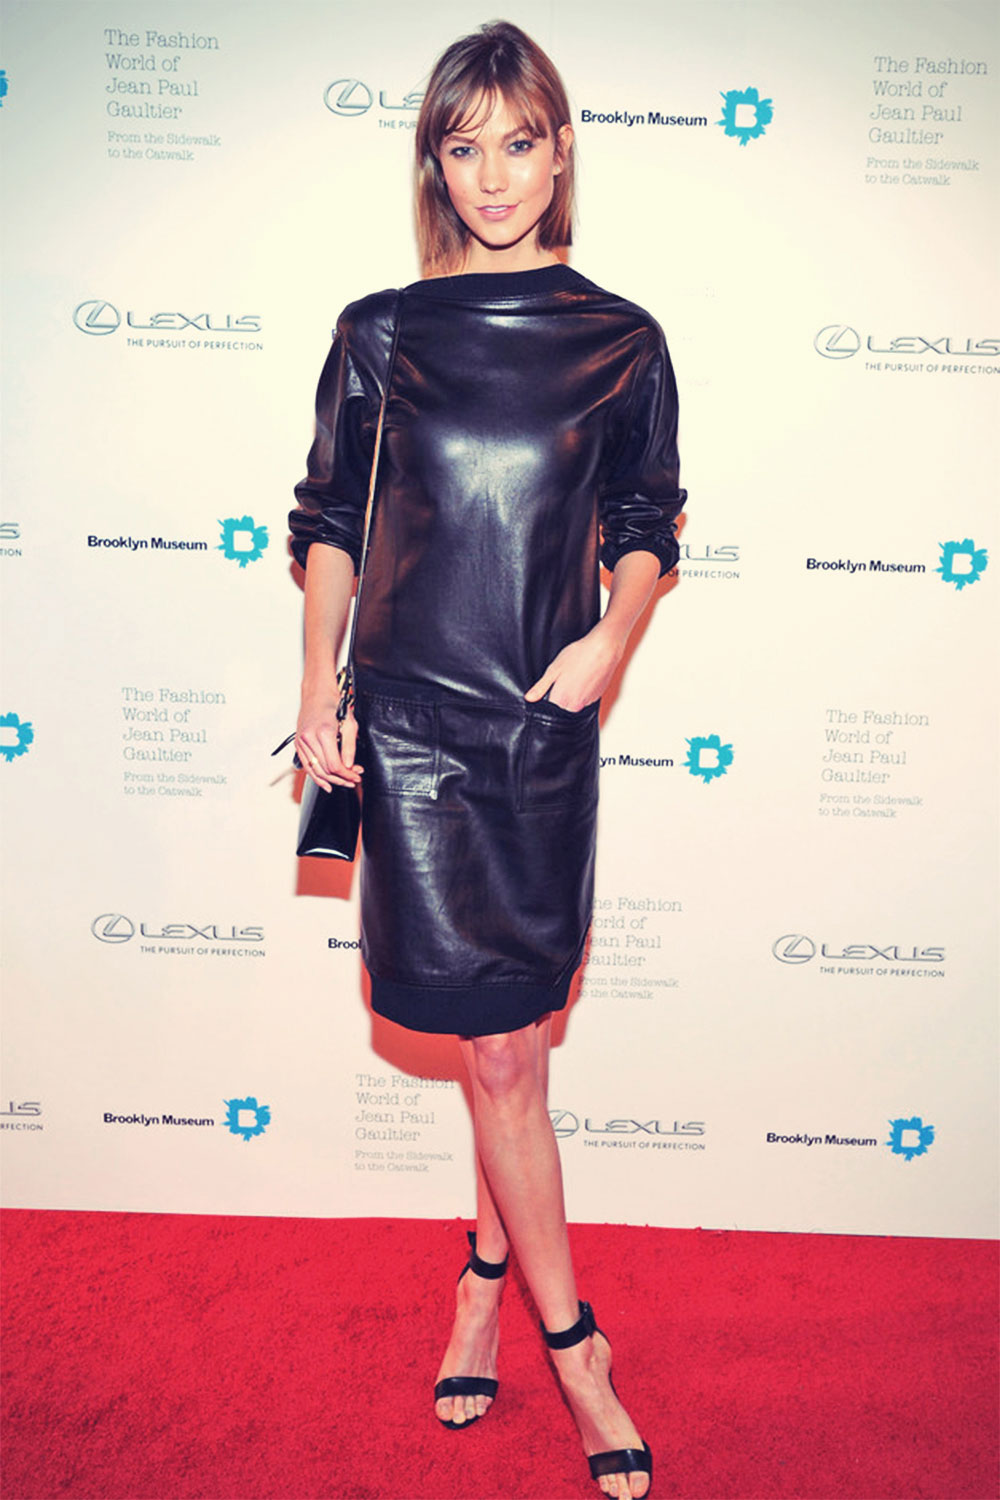 Karlie Kloss attends the VIP reception and viewing for The Fashion World of Jean Paul Gaultier